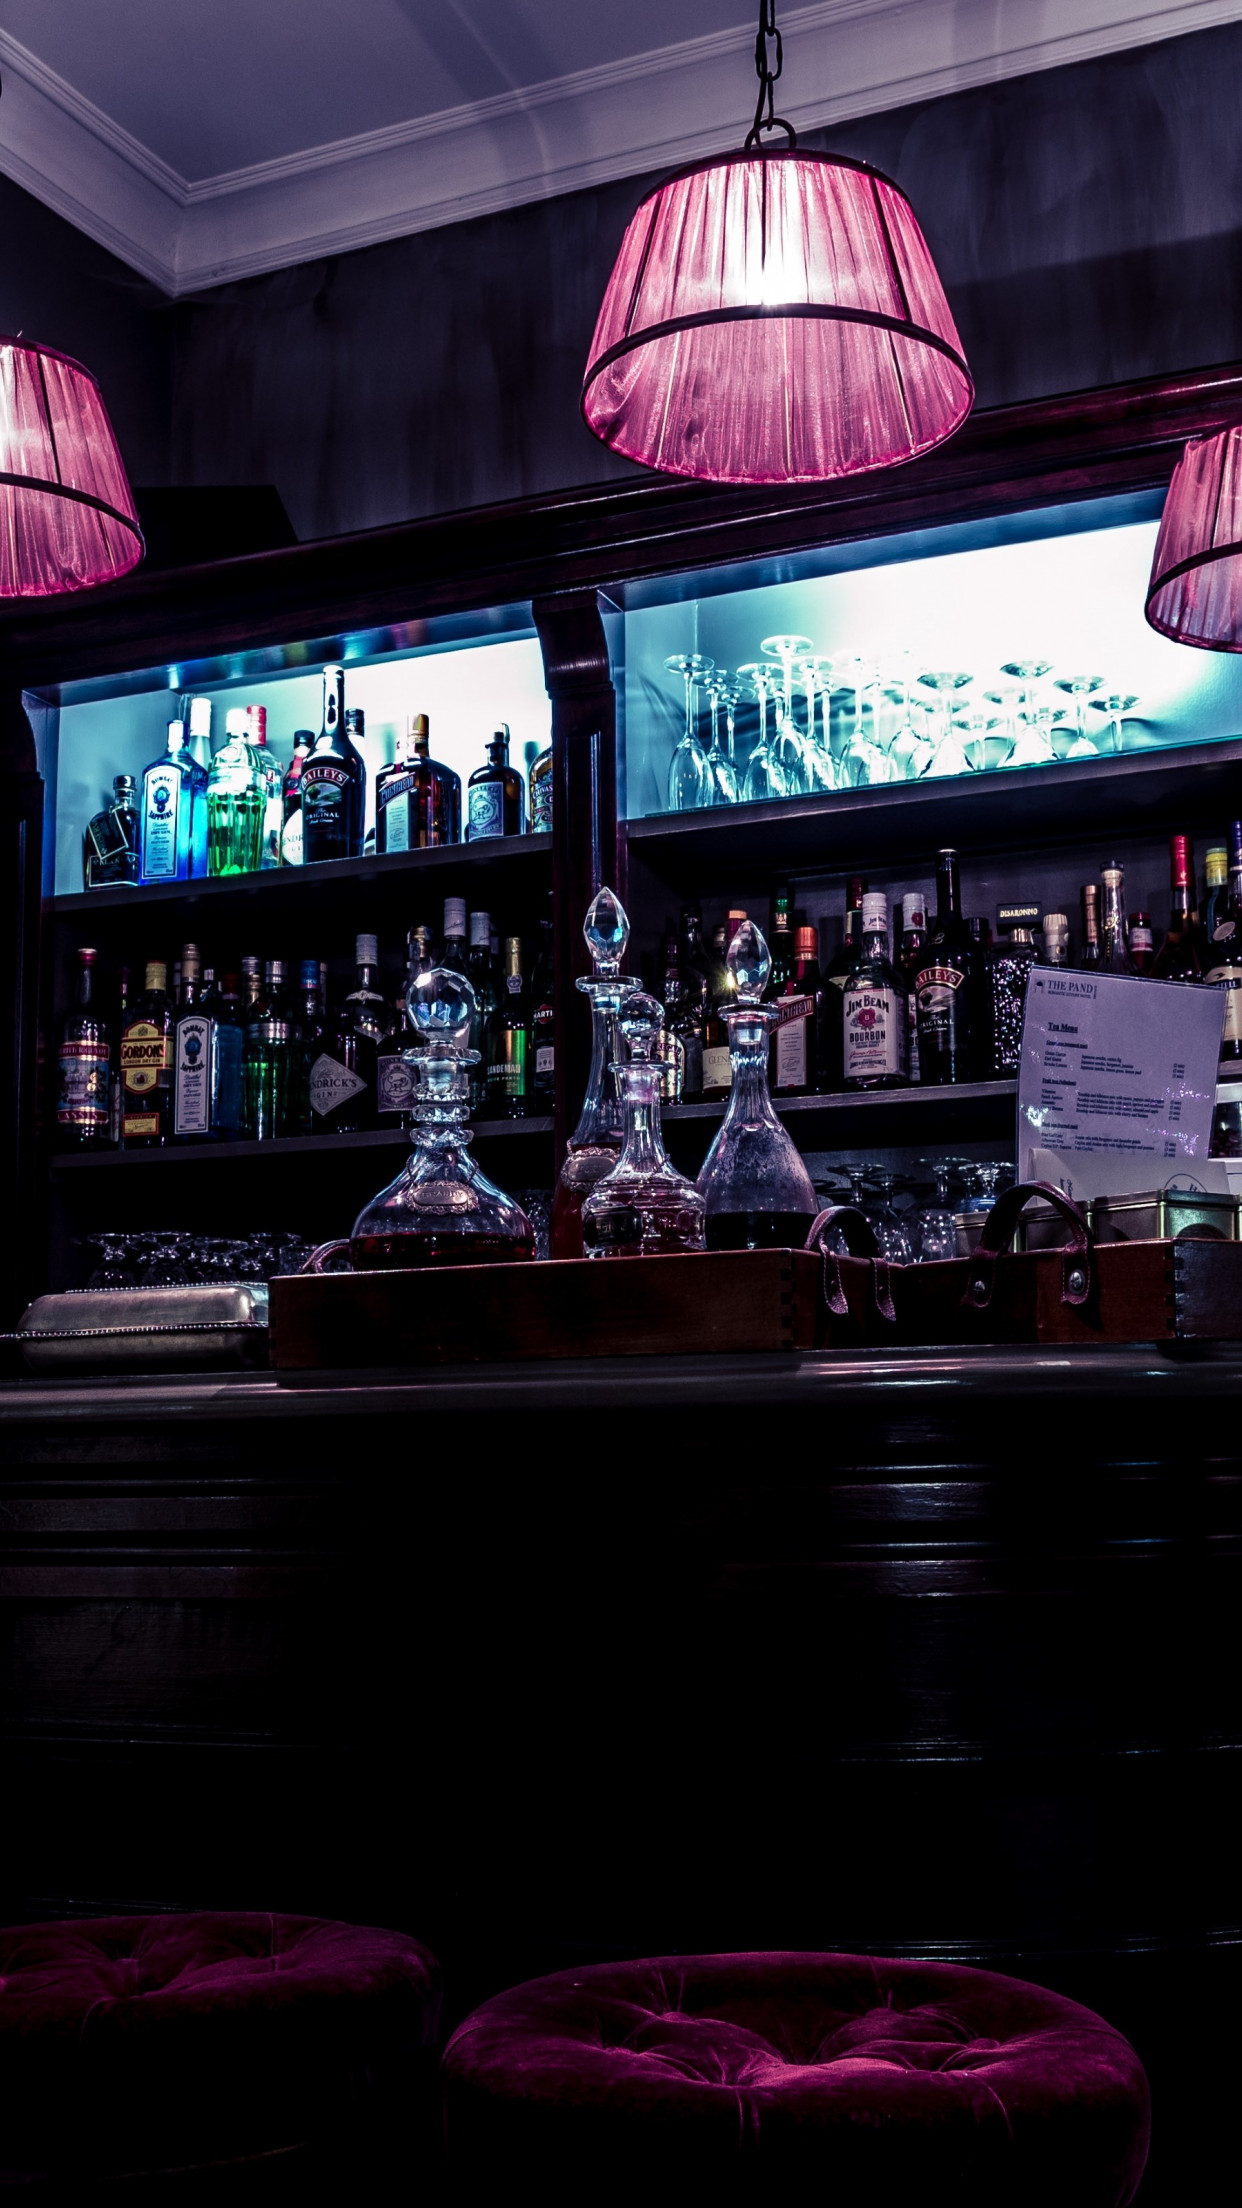 Interior bar design wallpaper 1242x2208